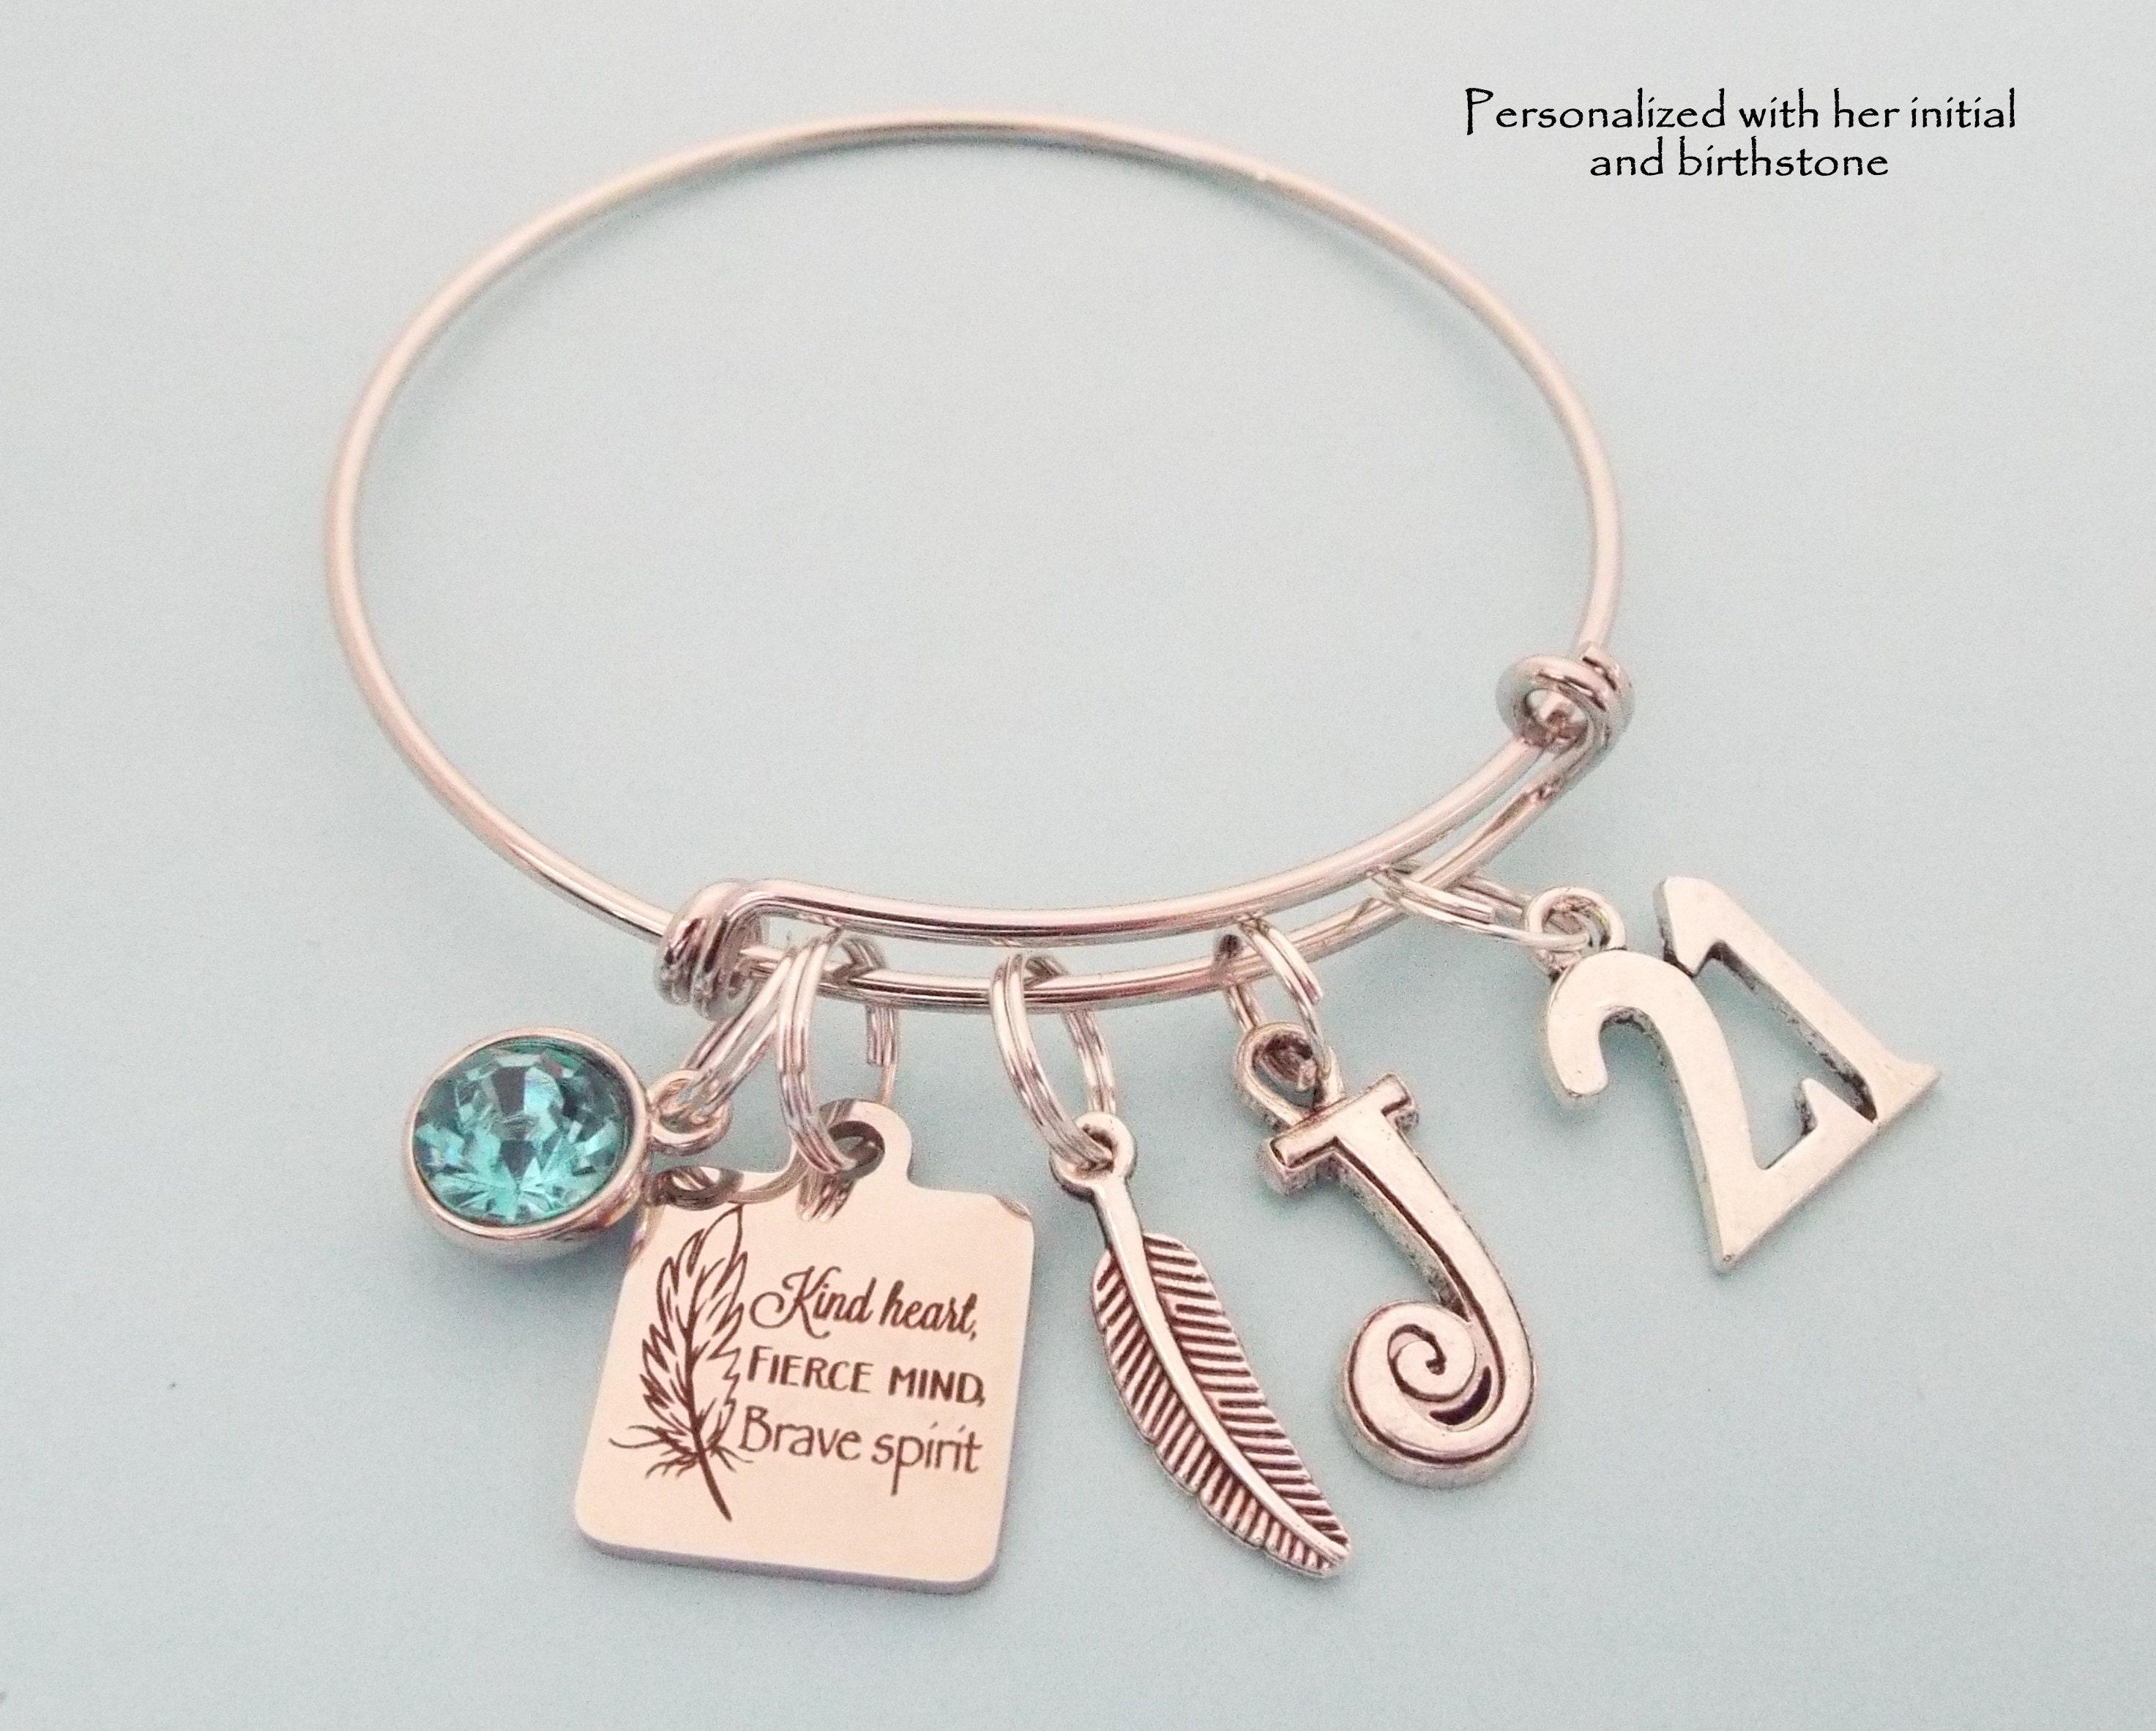 21st Birthday Gift For Daughter Personalized Girl Jewelry Bracelet